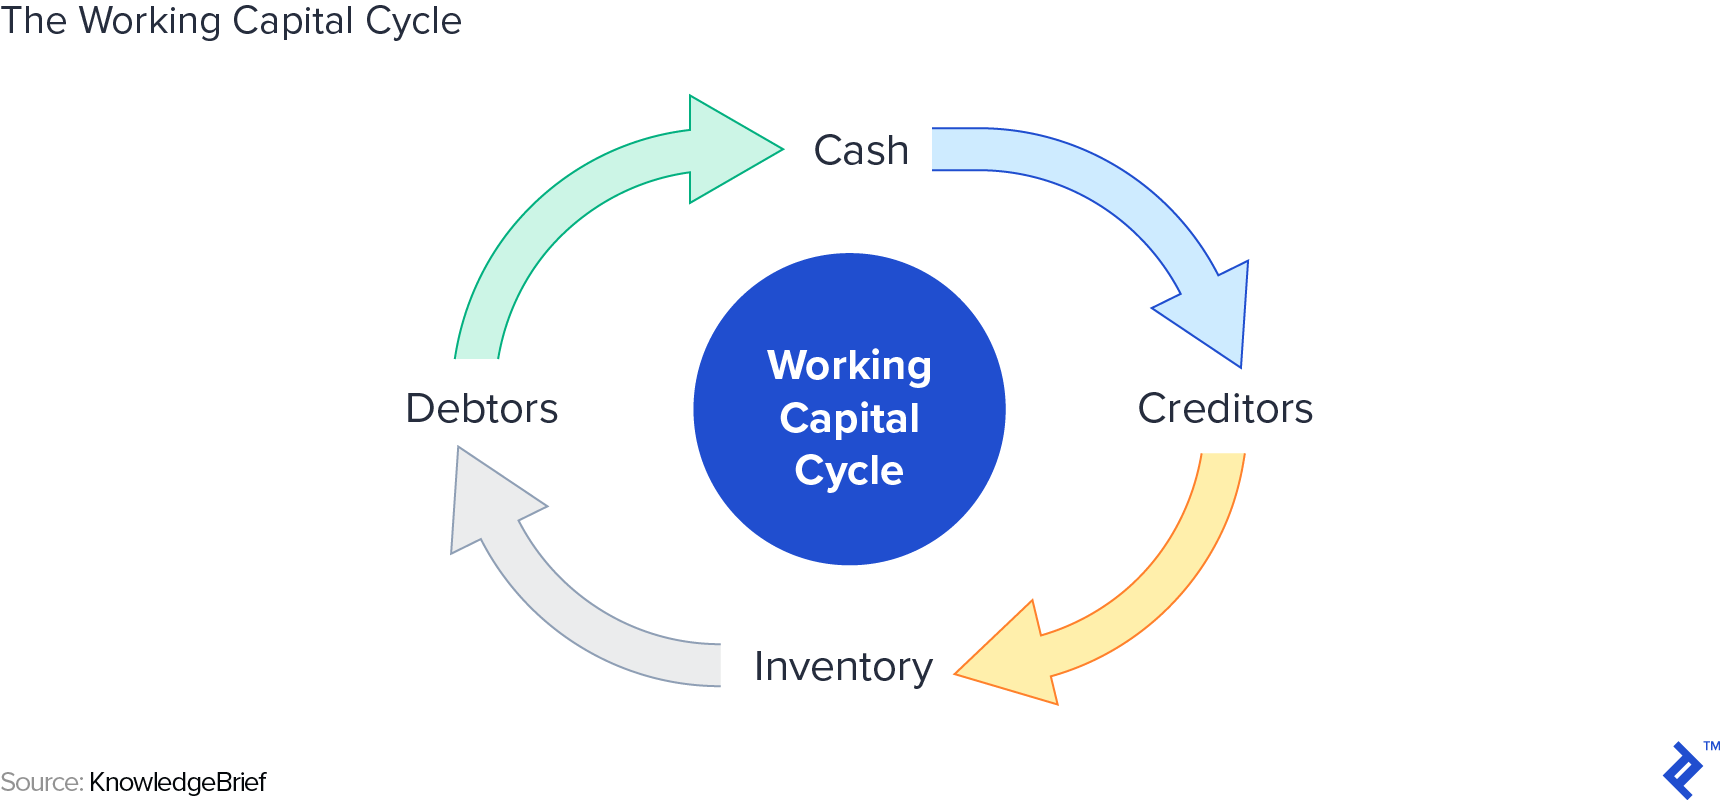 The Working Capital Cycle - Source: KnowledgeBrief